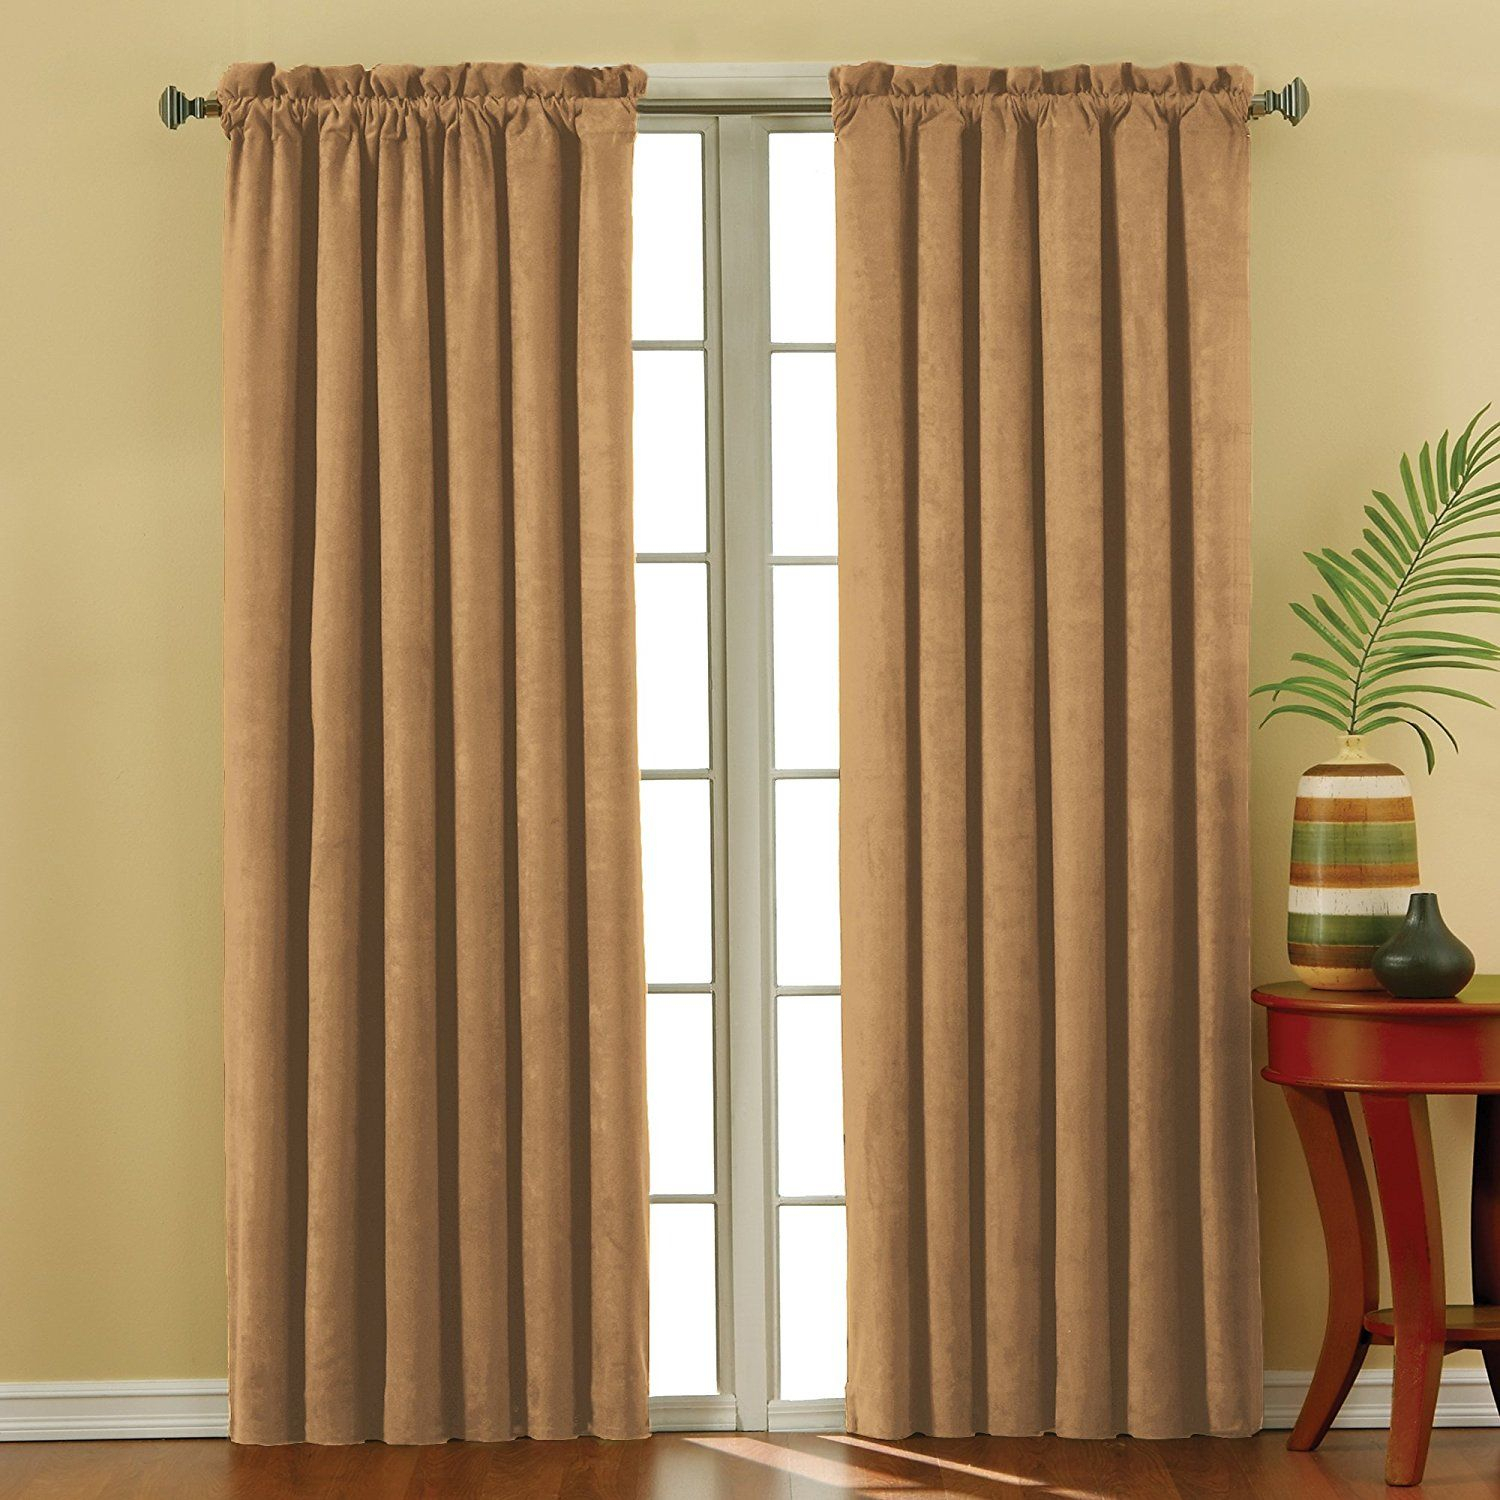 Eclipse 10301042x063go Suede 42 Inch63 Inch Thermaback Intended For Eclipse Corinne Thermaback Curtain Panels (View 11 of 20)